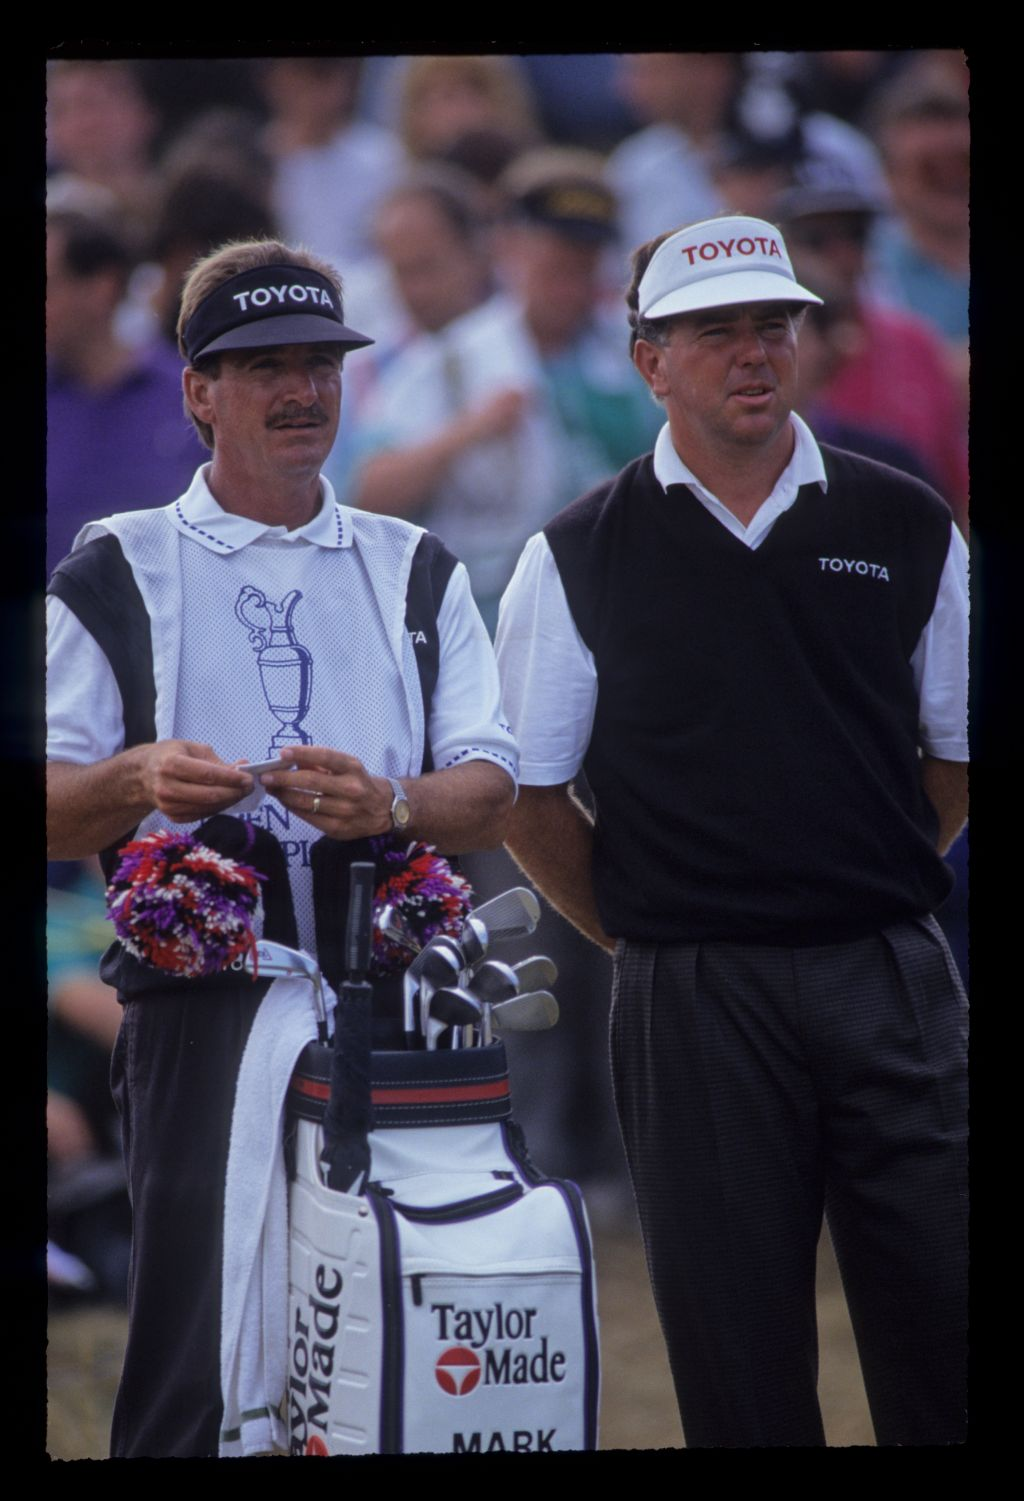 Mark O'Meara and his caddie considering their options on the tee during the 1991 Open Championship